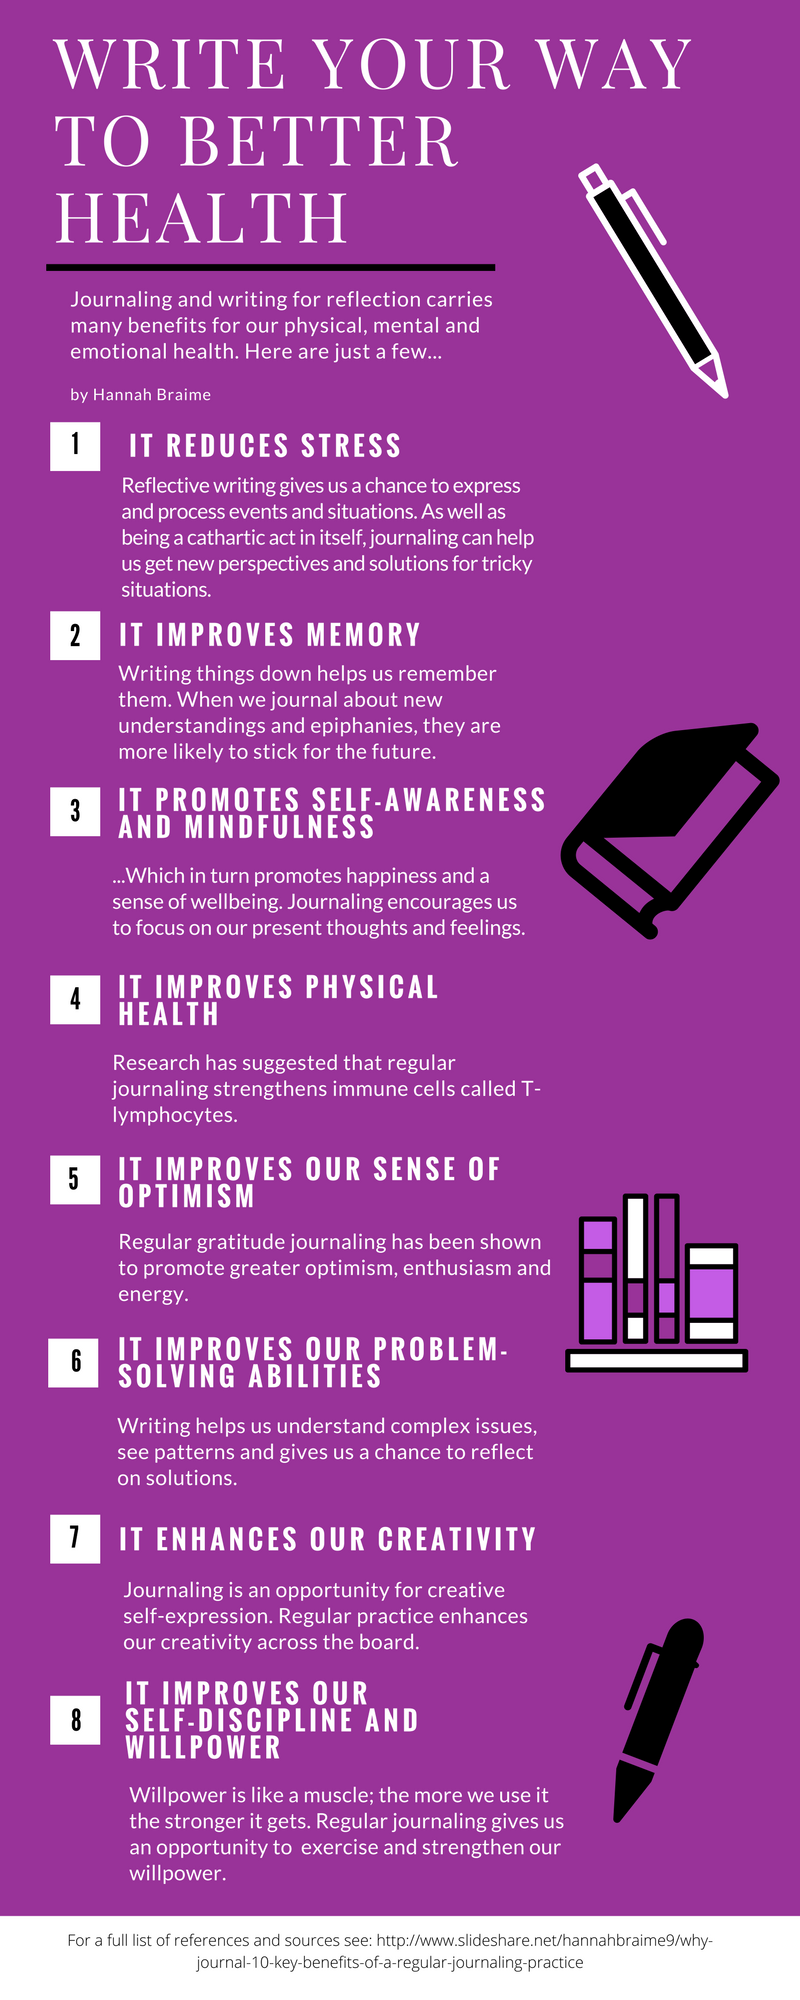 Regular writing is good for more than just clearing your head Click the image to discover the 8 surprising benefits of writing your way to better health